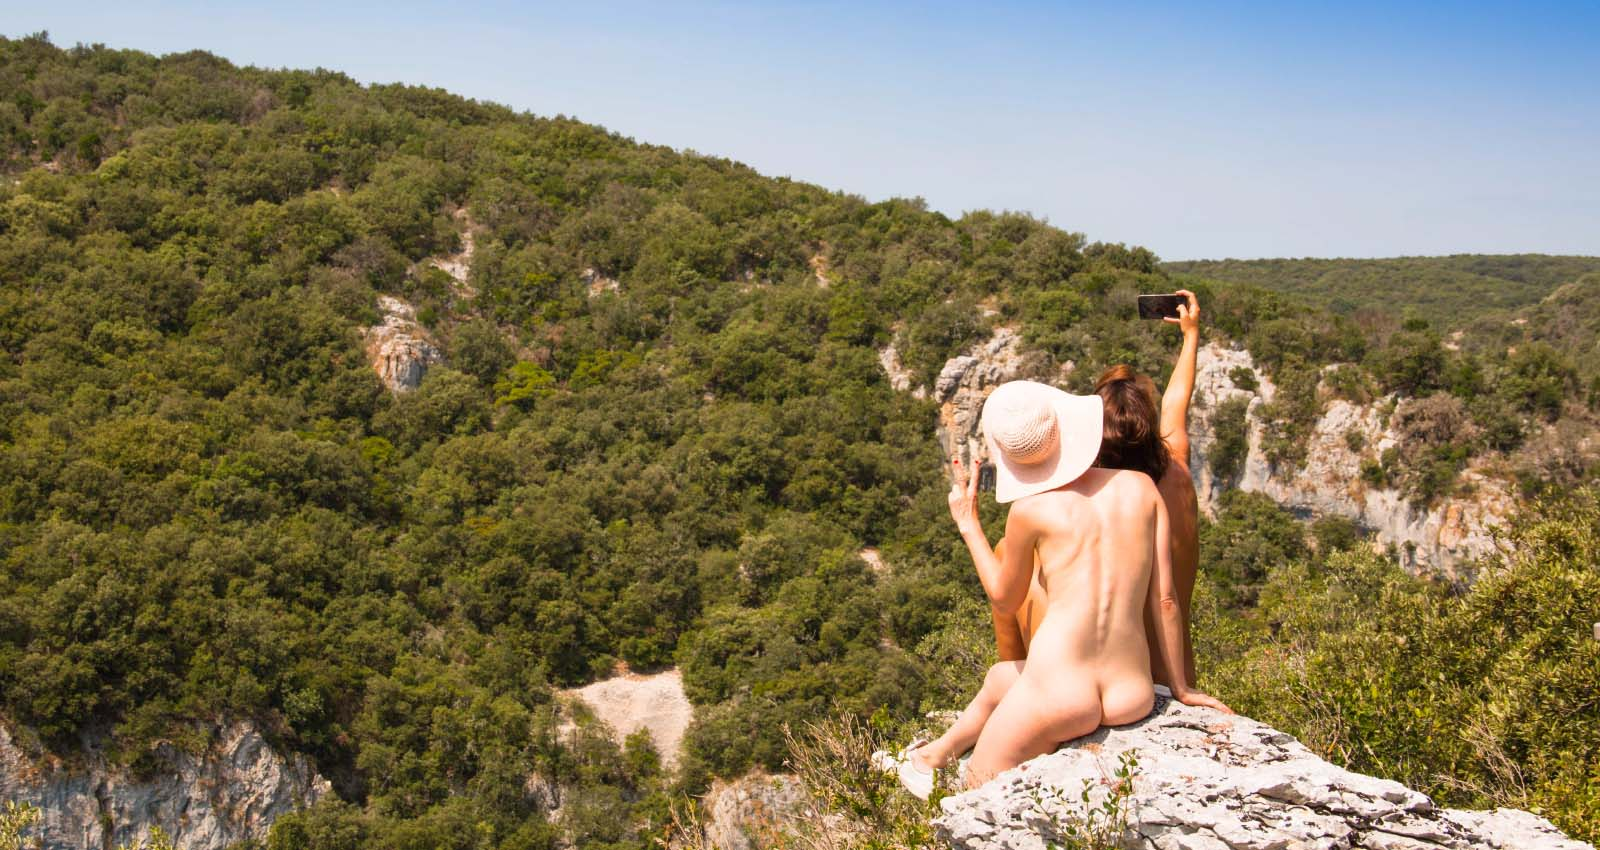 Smartphones at Naturist Resorts: Take em or Break em?